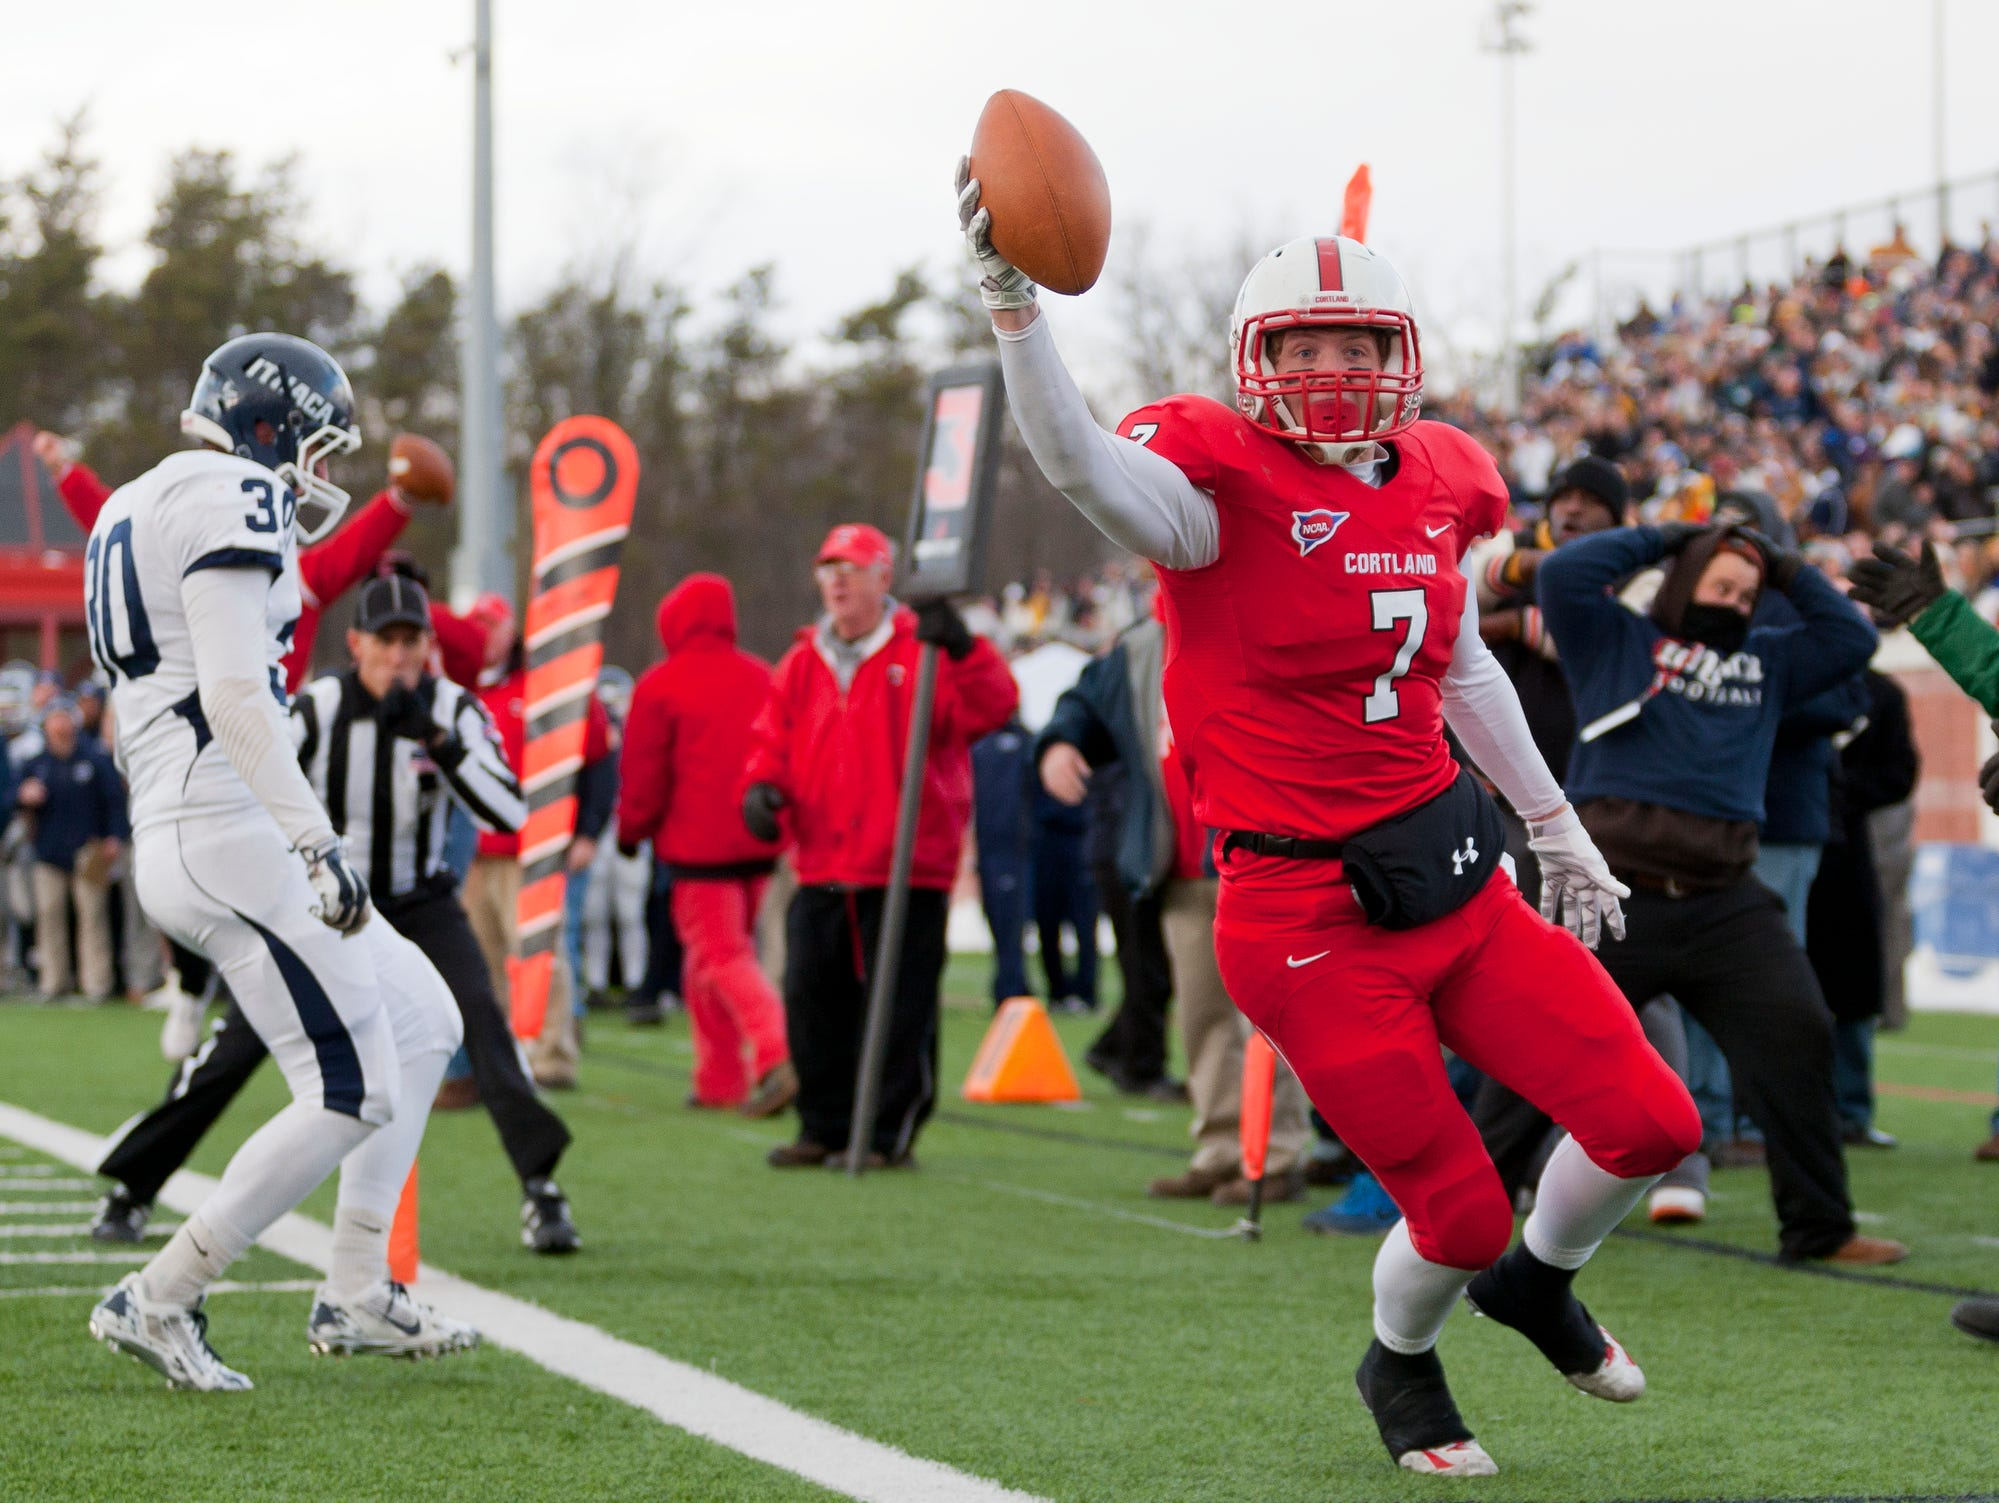 2014: Cortland's Jon Mannix celebrates after catching the winning touchdown as time expired for Cortland to beat Ithaca 23-20 in the annual Cortaca Jug game Saturday in Cortland.